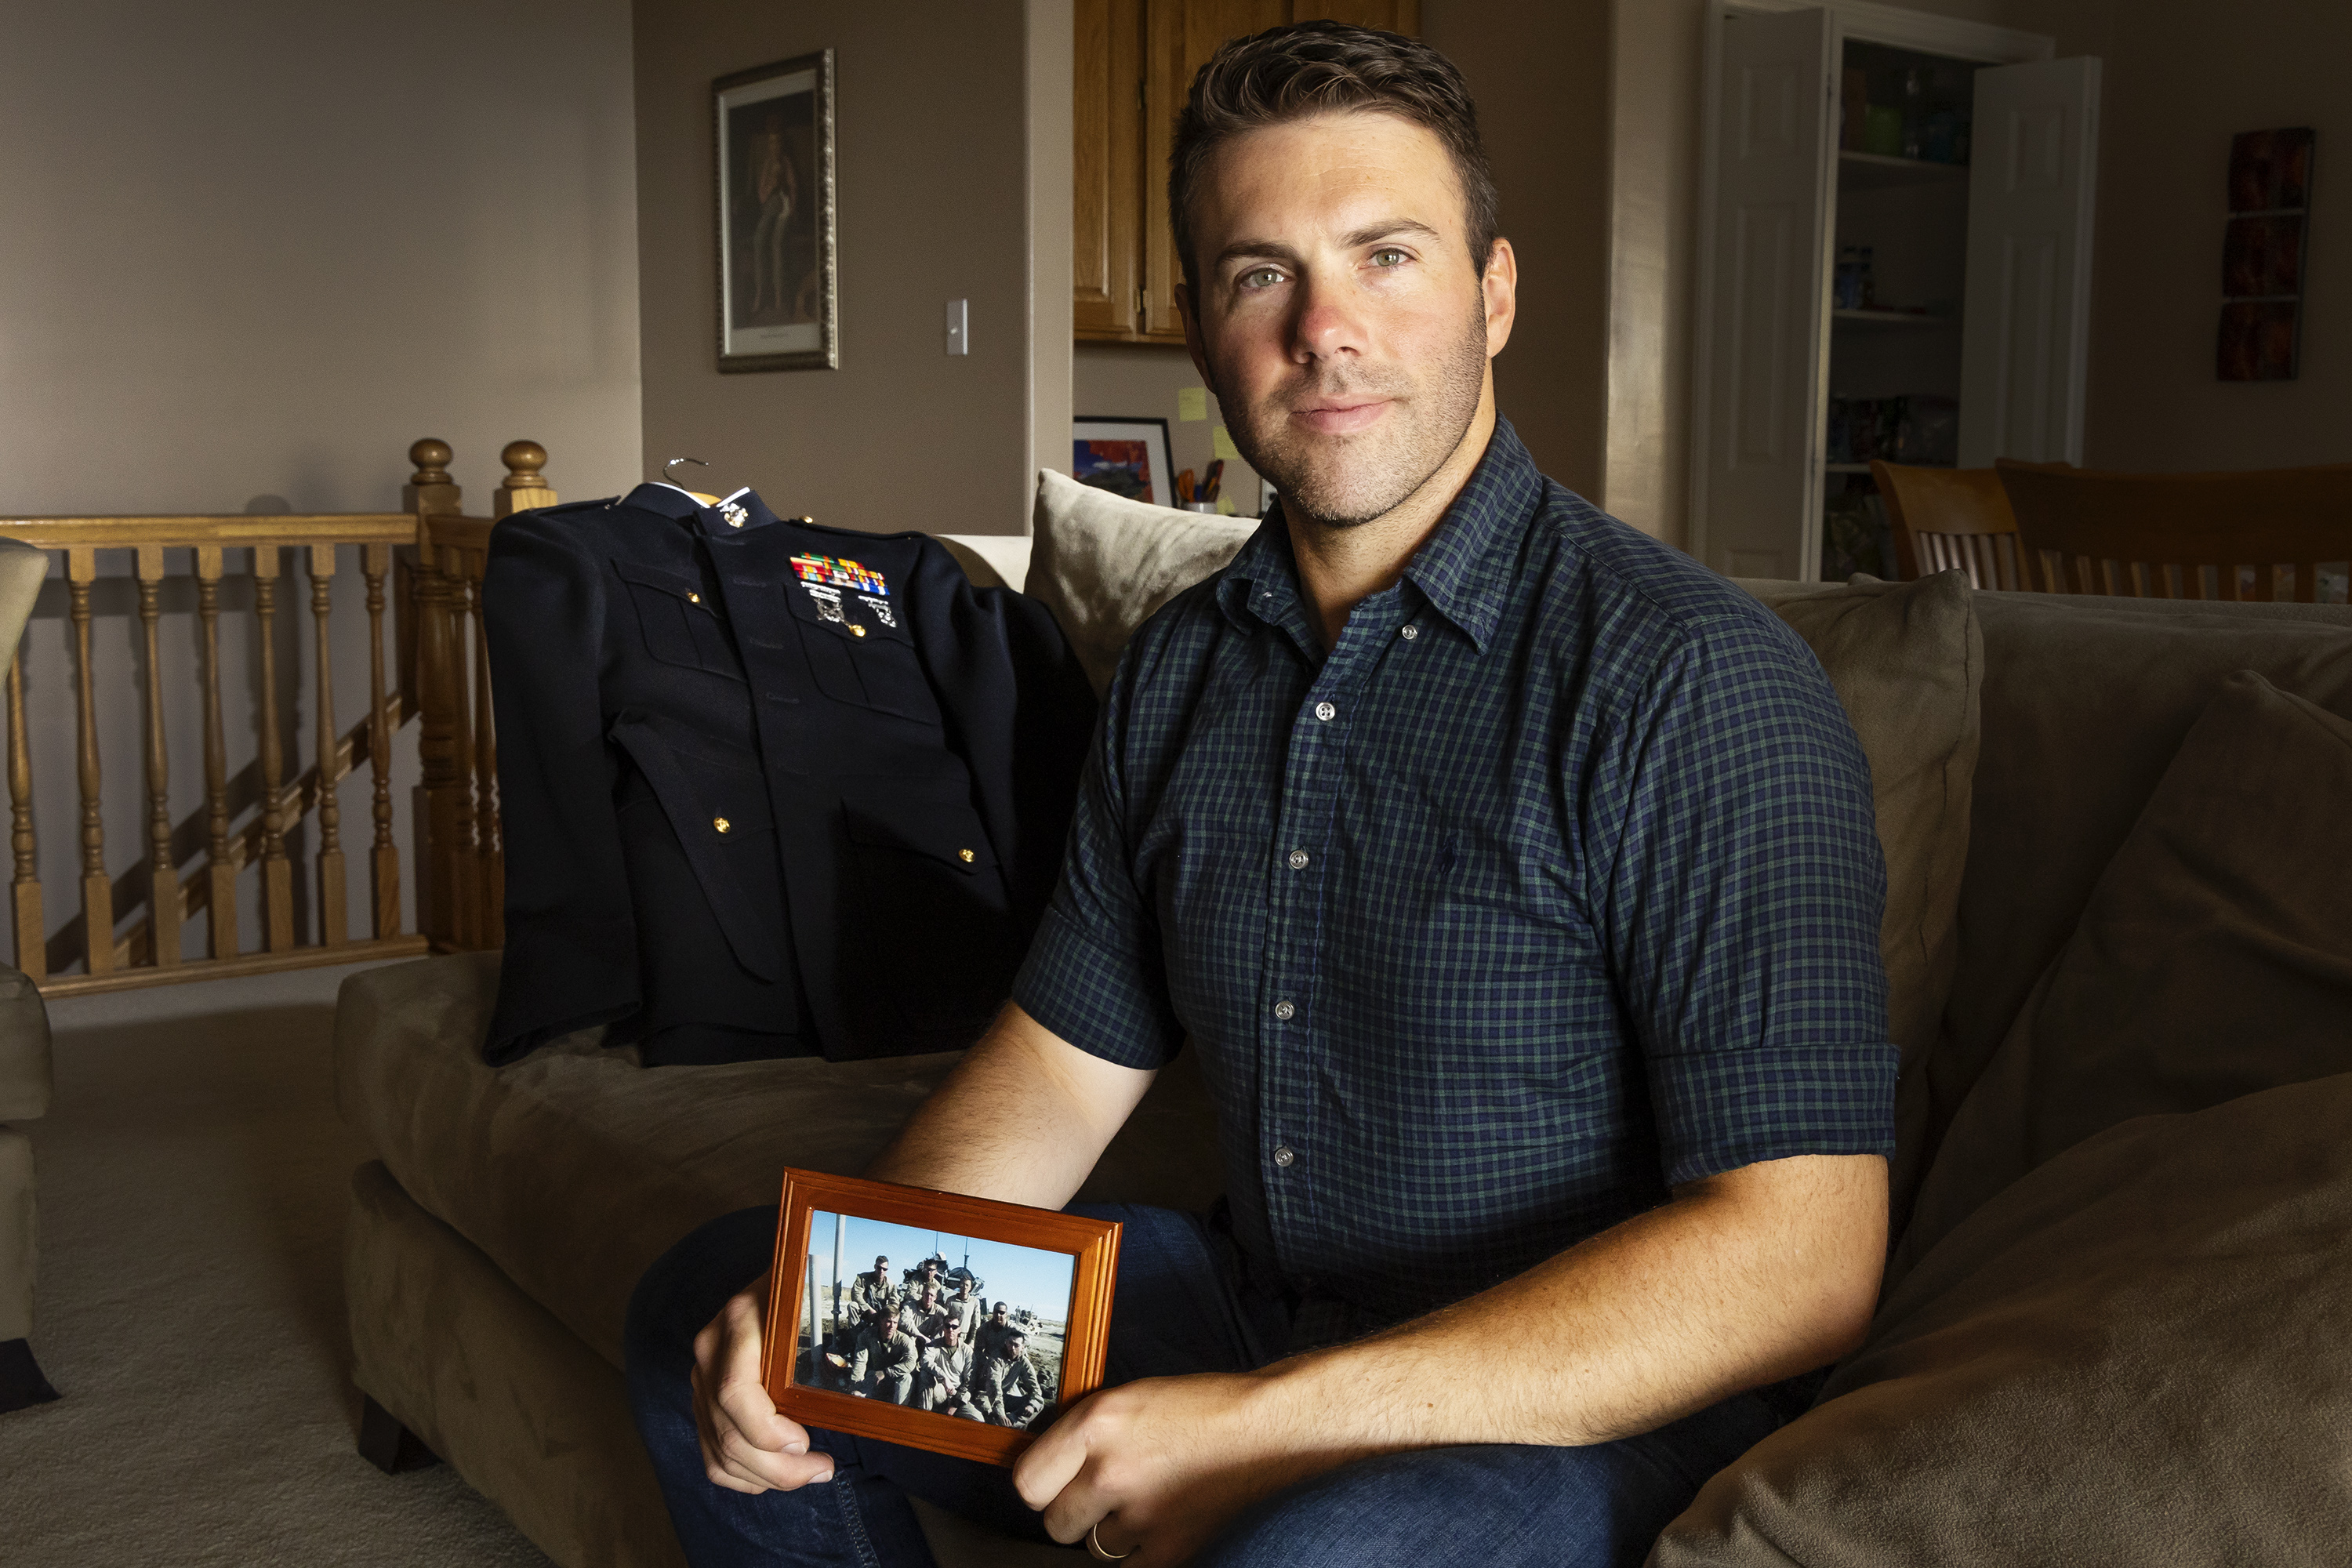 Jeremy Ruppe, a Marine who served with the 4th Light Armored Reconnaissance Battalion in Afghanistan, holds a photo of his crew in Afghanistan while posing for photos at his home in Lindon on Friday, Aug. 20, 2021.